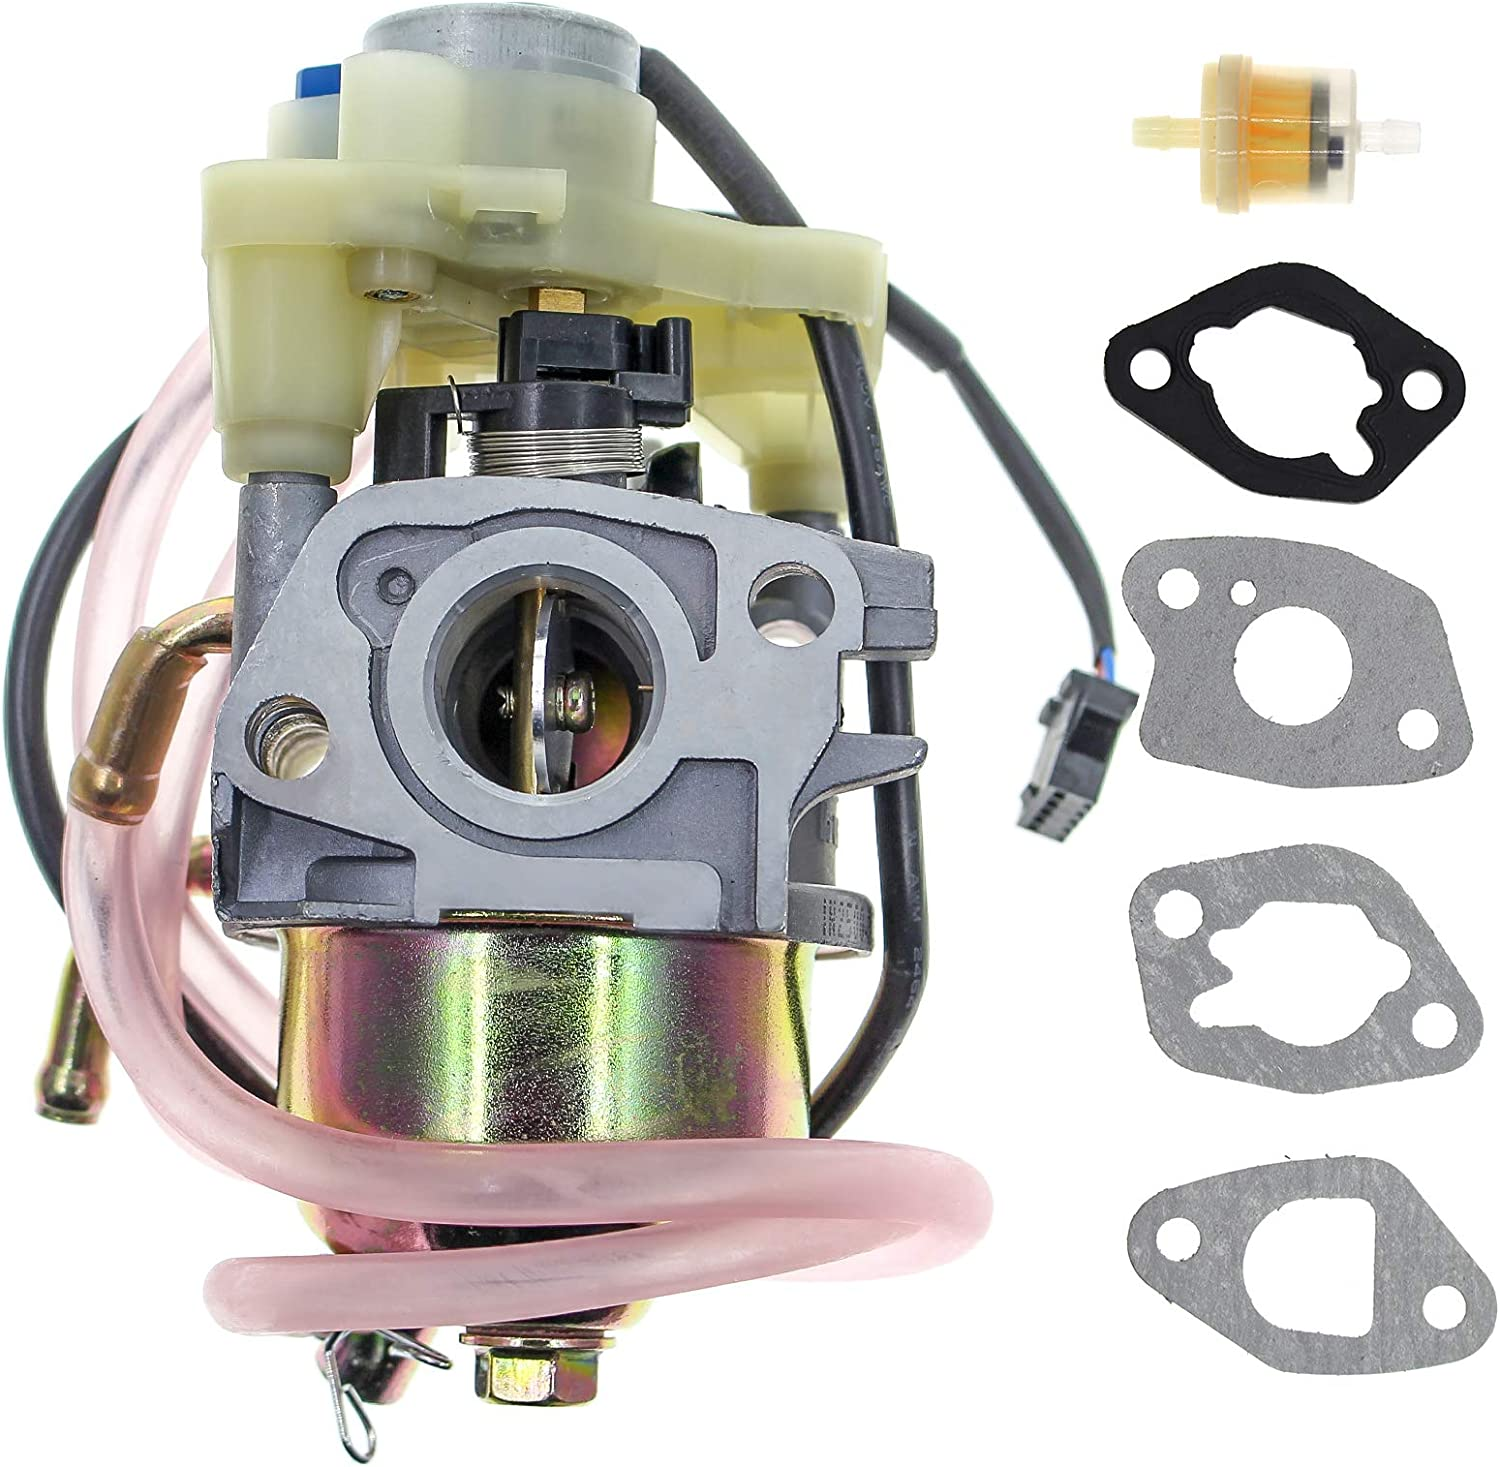 MOTOALL New Carburetor Carb for Branded goods Generac sale # 0H43470 iX2000 Replace